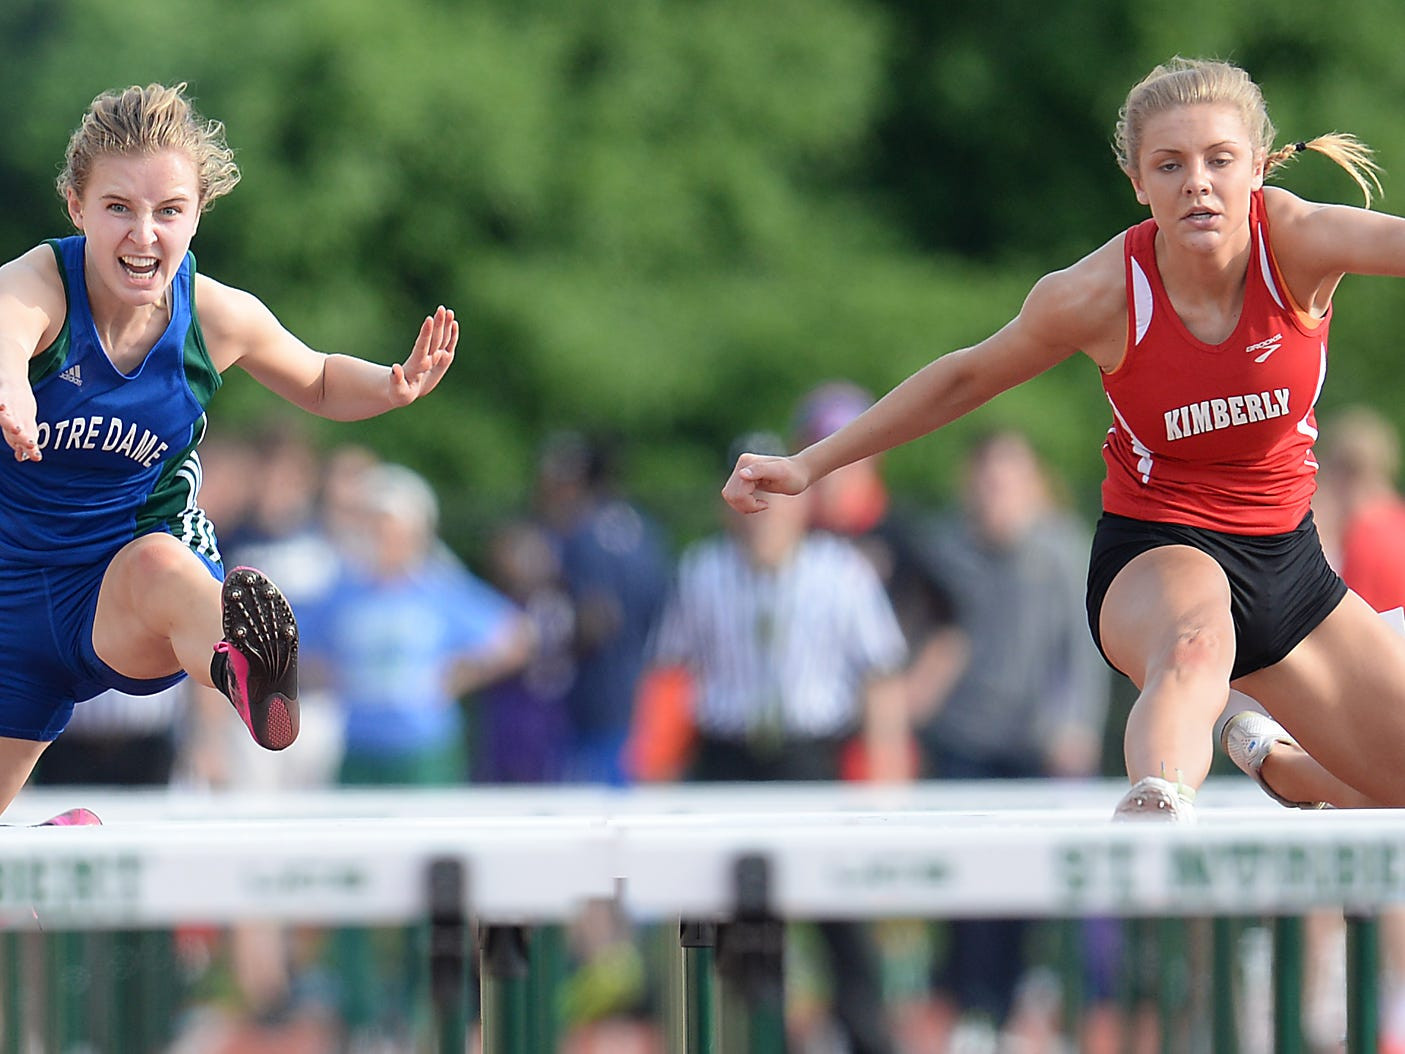 Kimberly's Kayla Vandehey (right) and Notre Dame's Liz Markland battle in the 100-meter hurdles Friday at Schneider Stadium in De Pere.